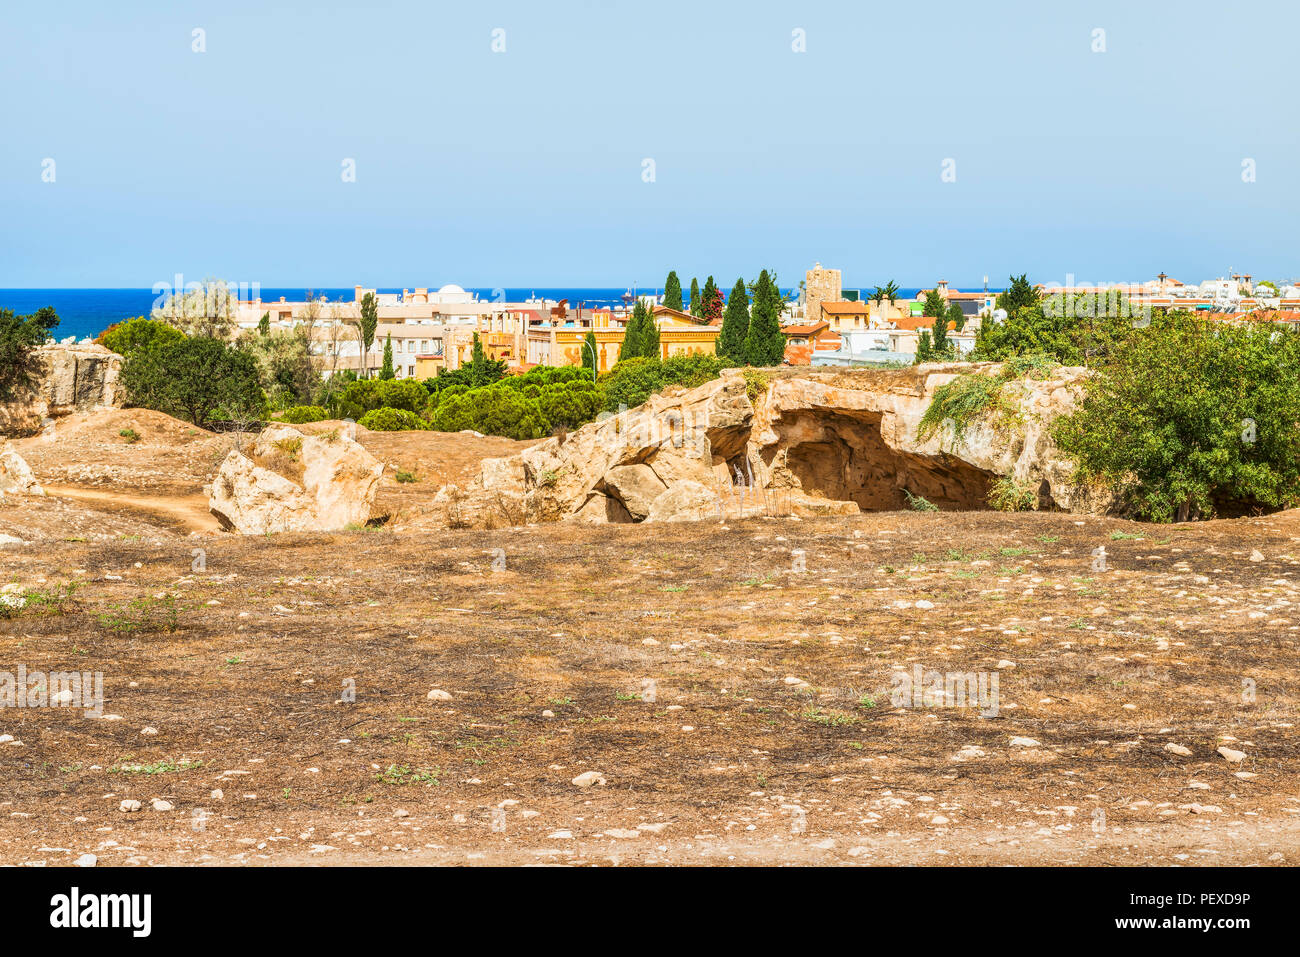 View of the town of Paphos in Cyprus.  Paphos is known as the center of ancient history and culture of the island.  It is very popular as a center for - Stock Image